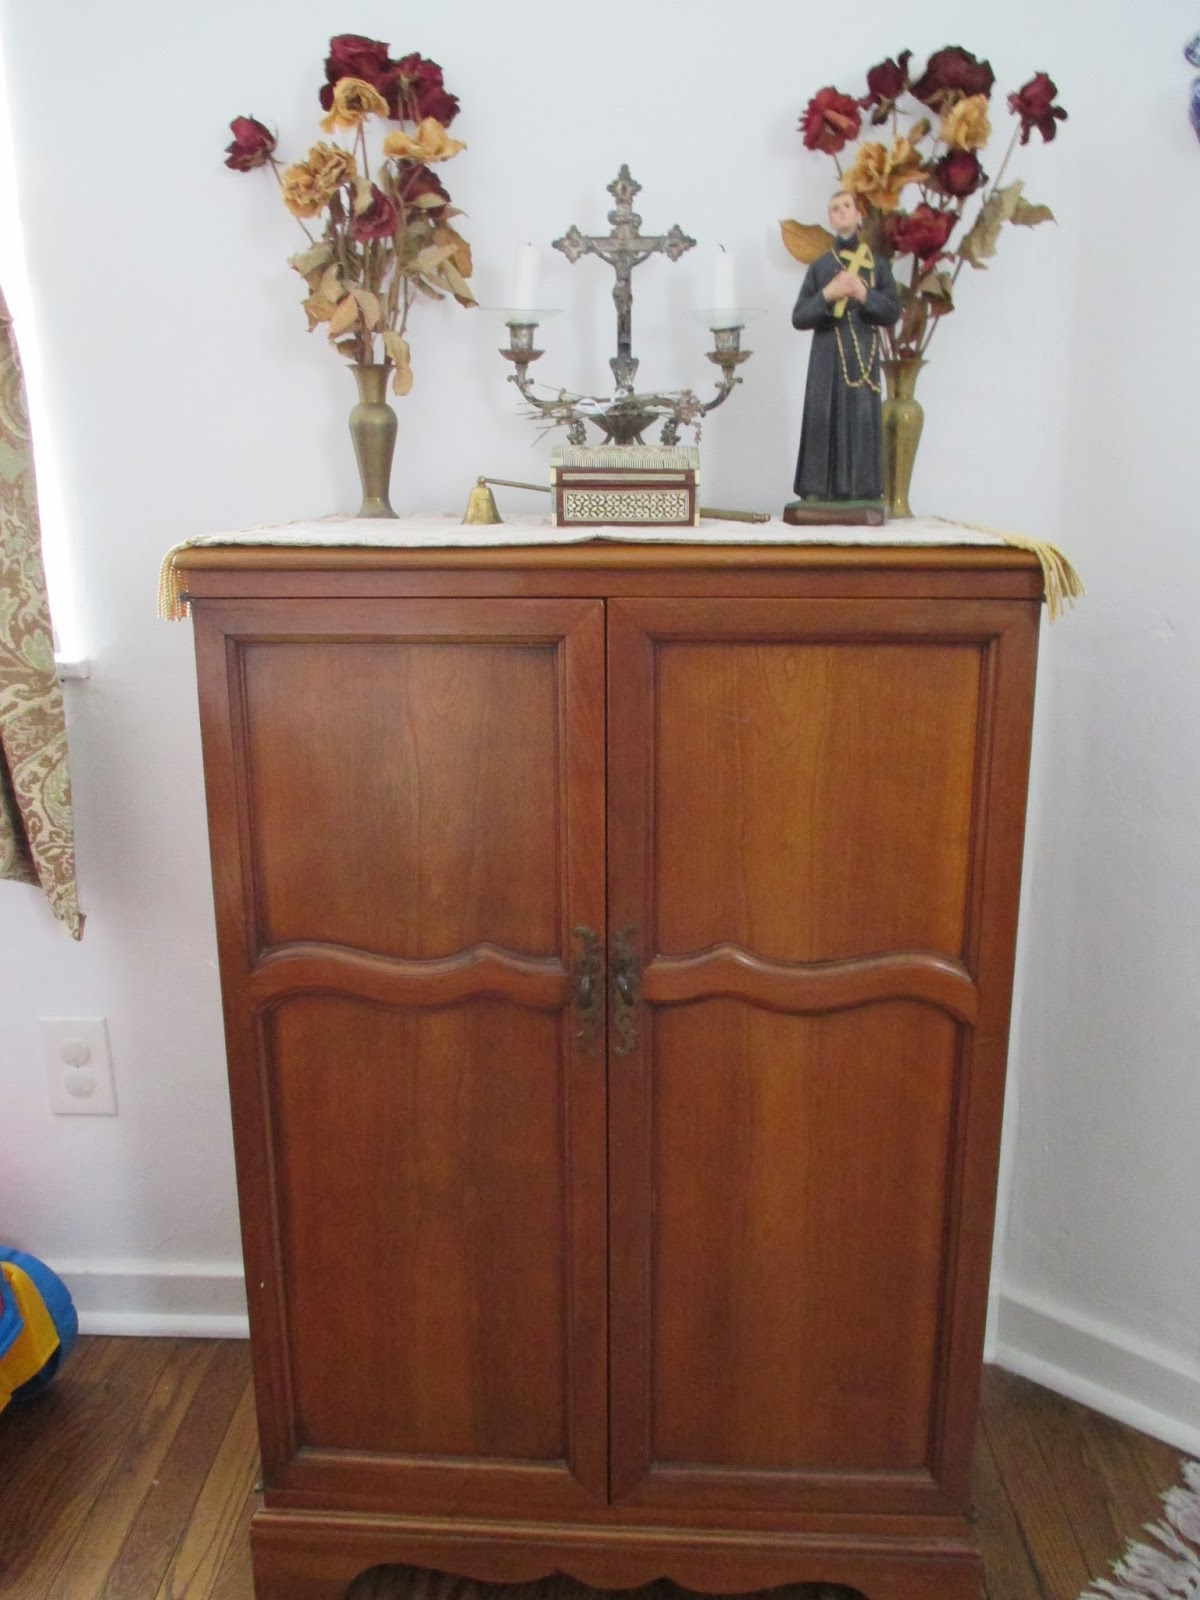 Splendor In The Home Setting Up A Home Altar - Home altar designs